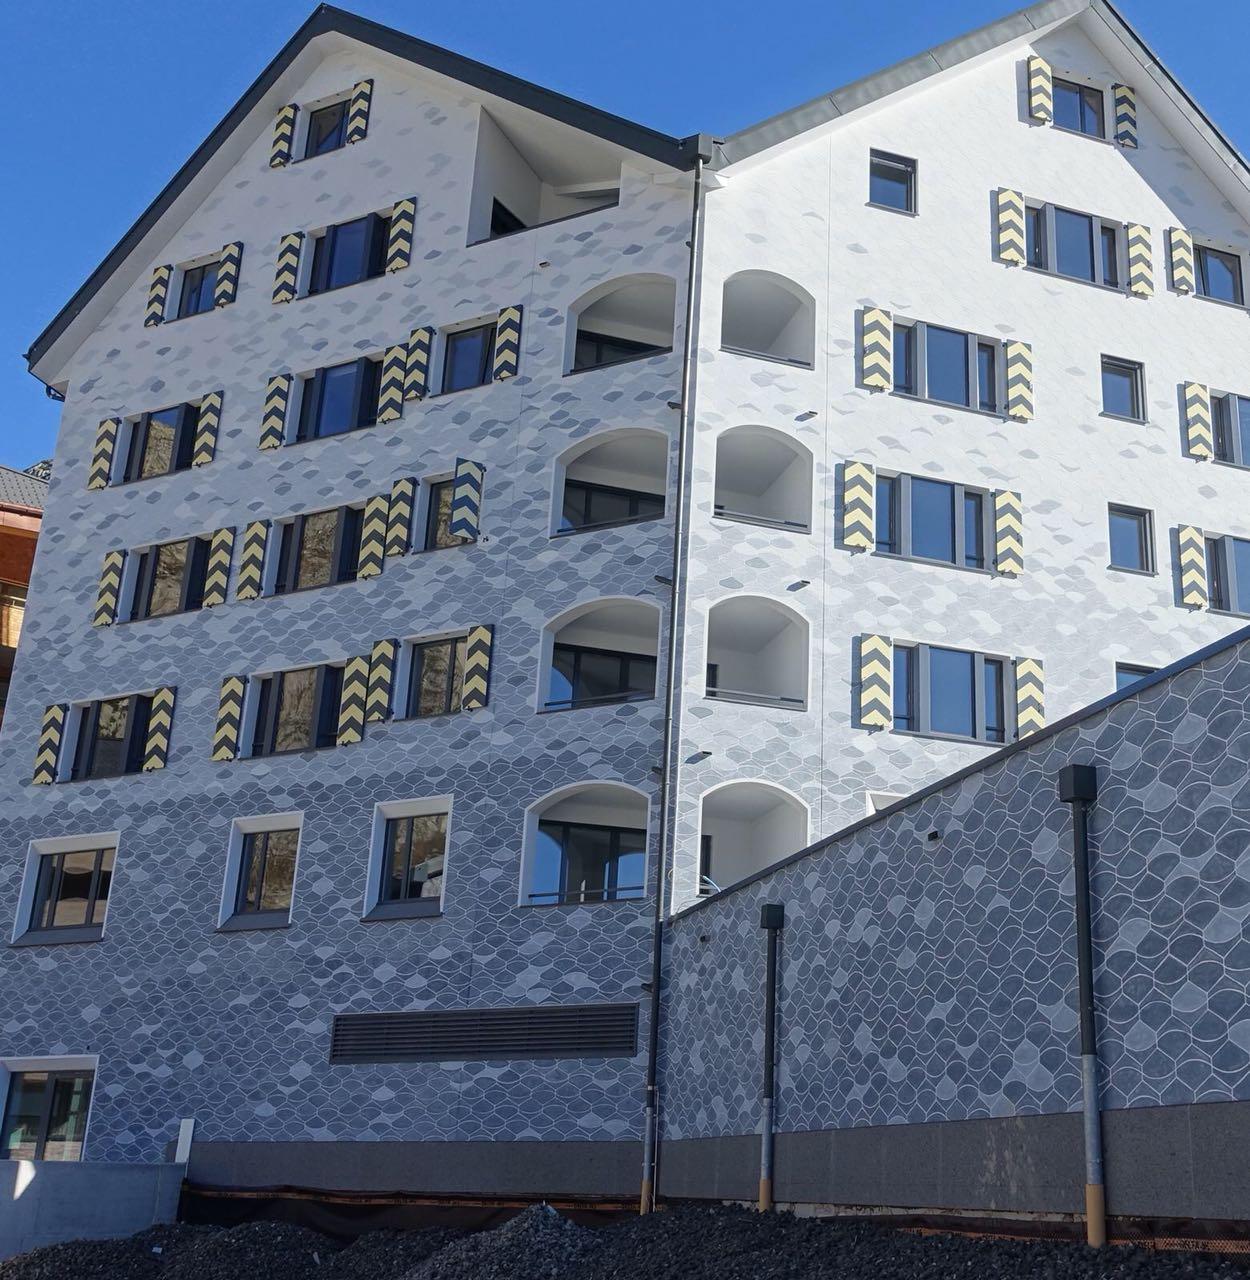 BEECK Concrete Stone Glaze Project - Swiss Alps Resort Edelweiss - Completed